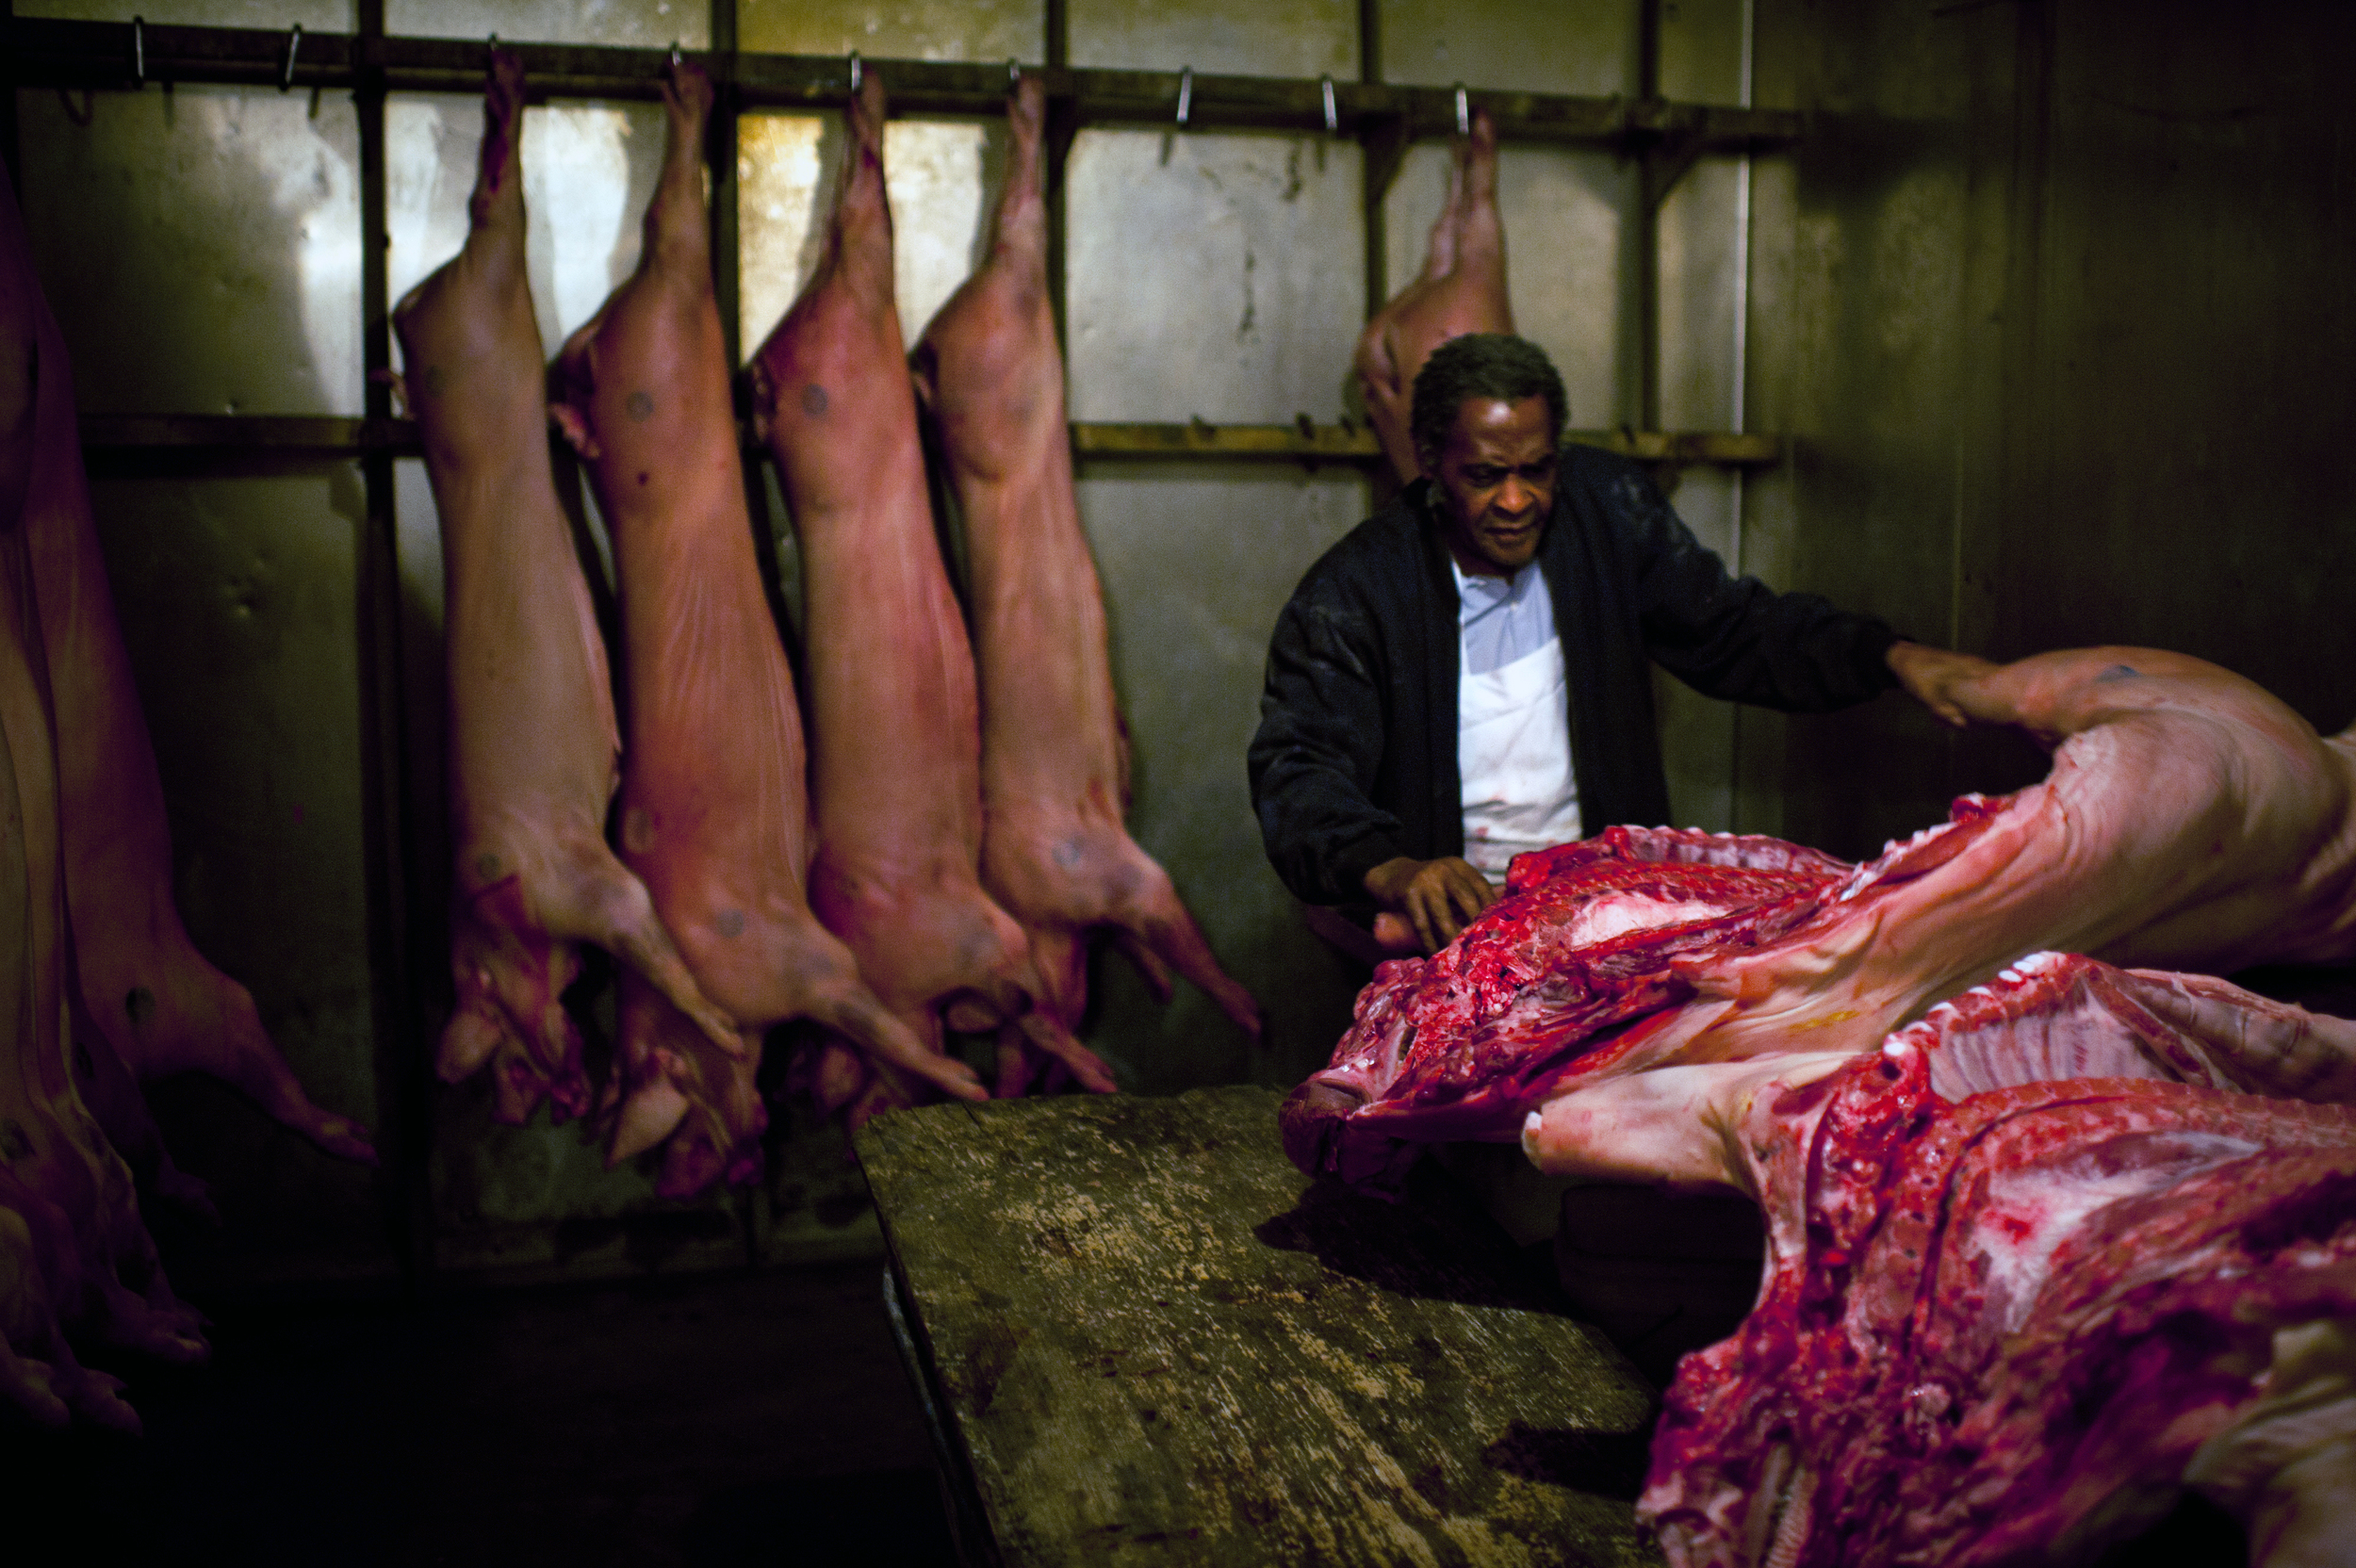 Pitmaster James Henry Howell checks his pigs at the Skylight.